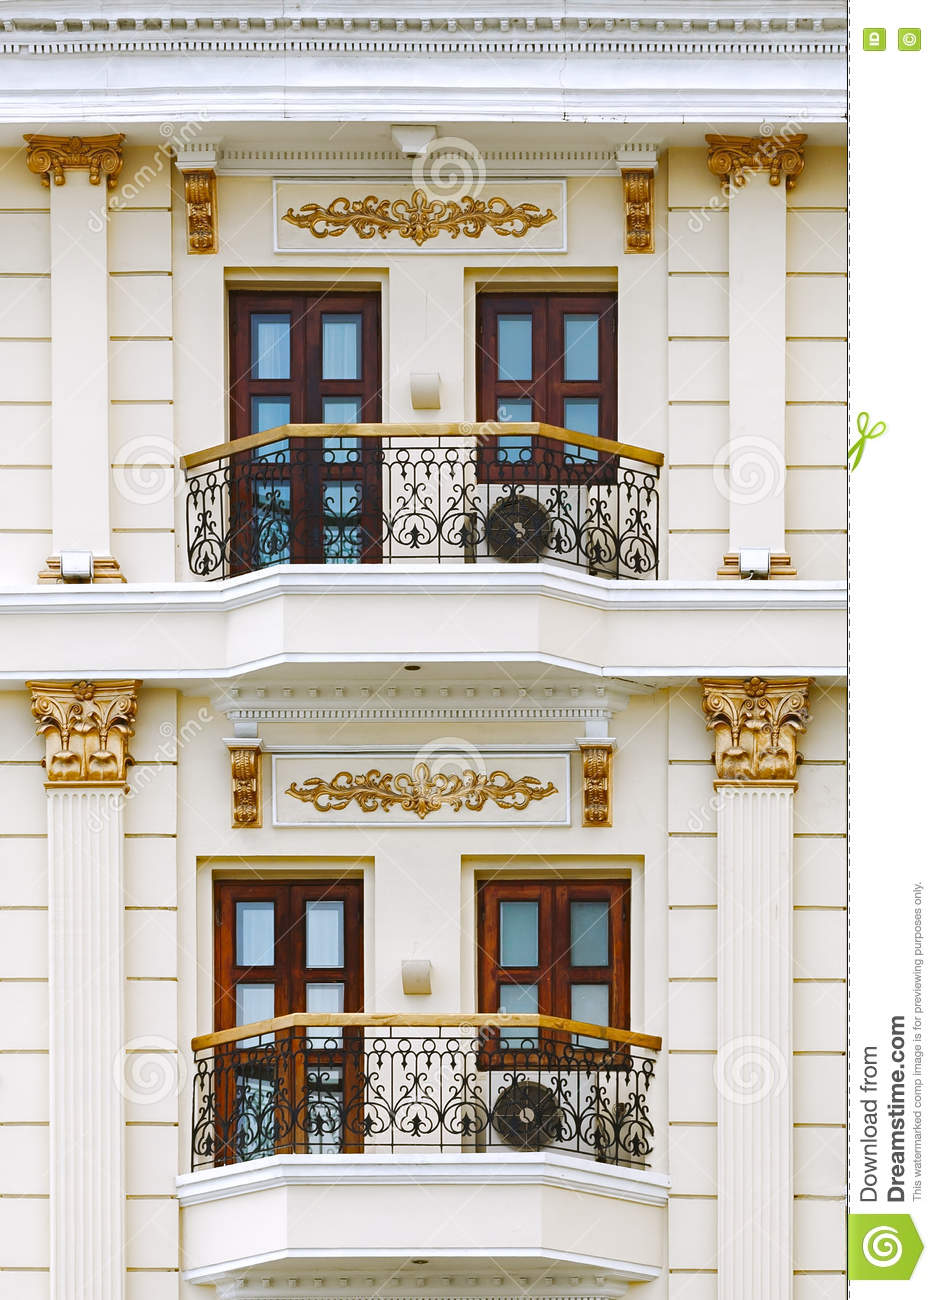 How to quickly close the balcony windows with tulle 6